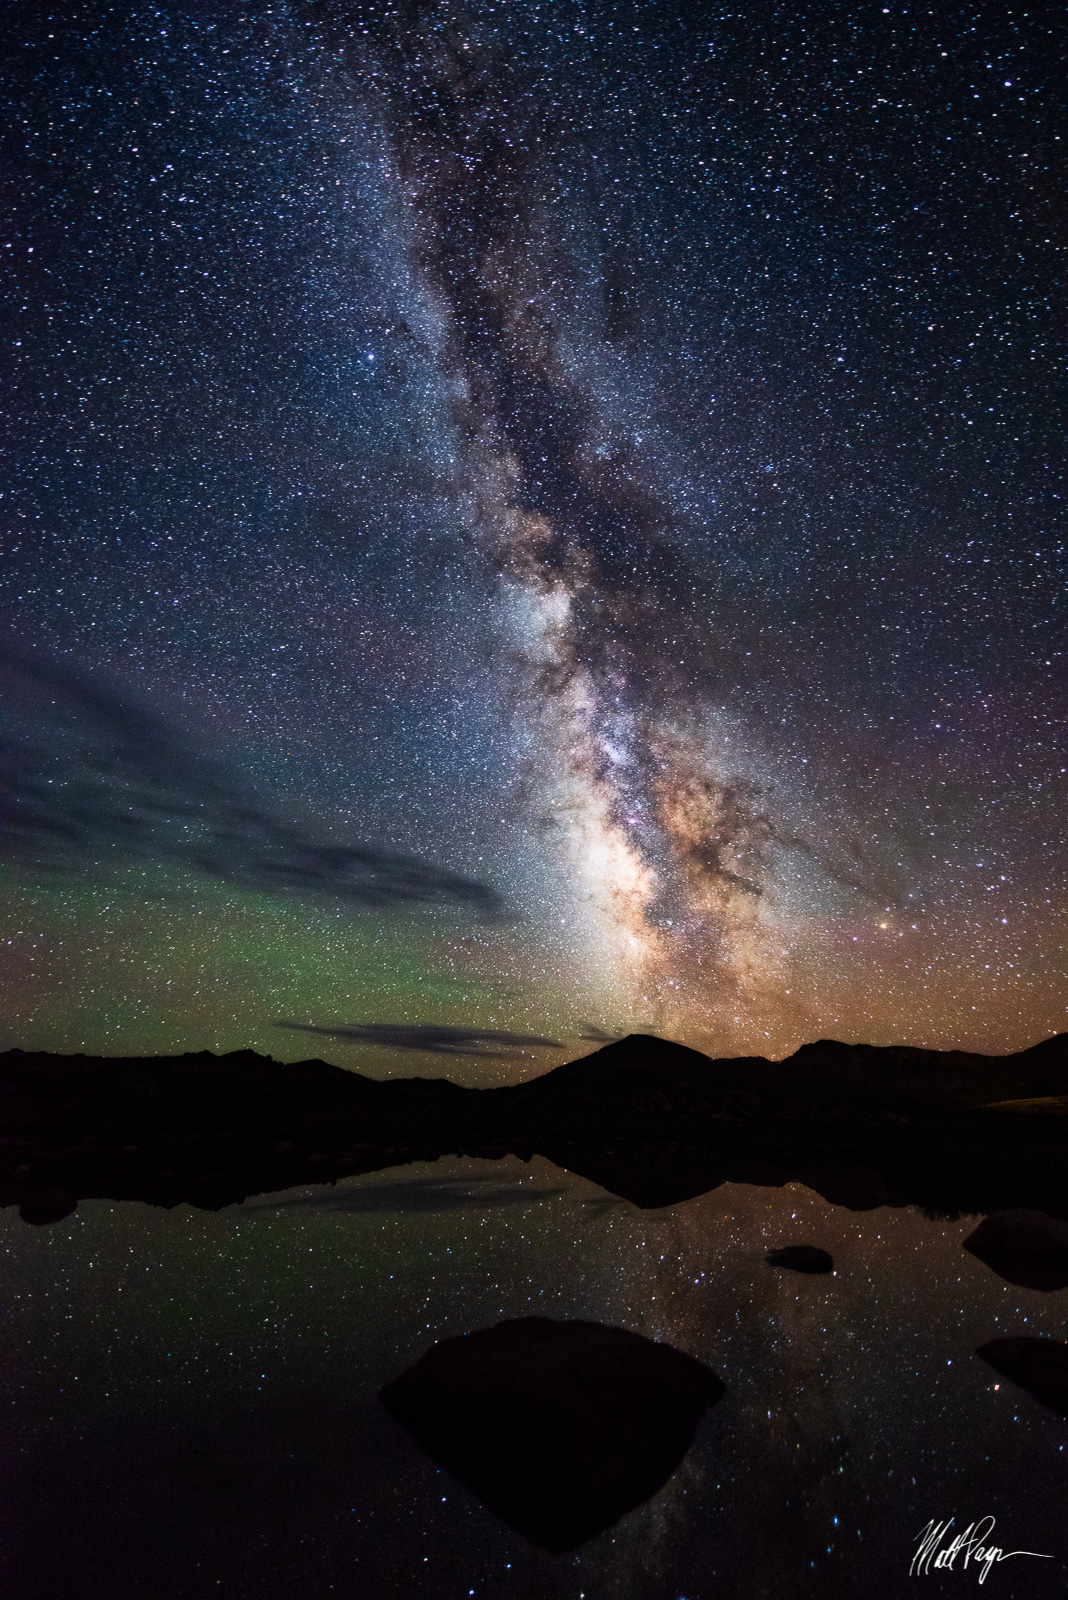 Colorado, Independence Pass, Landscape, Milky Way, Mountains, Night, Nightscape, Reflection, Stars, photo